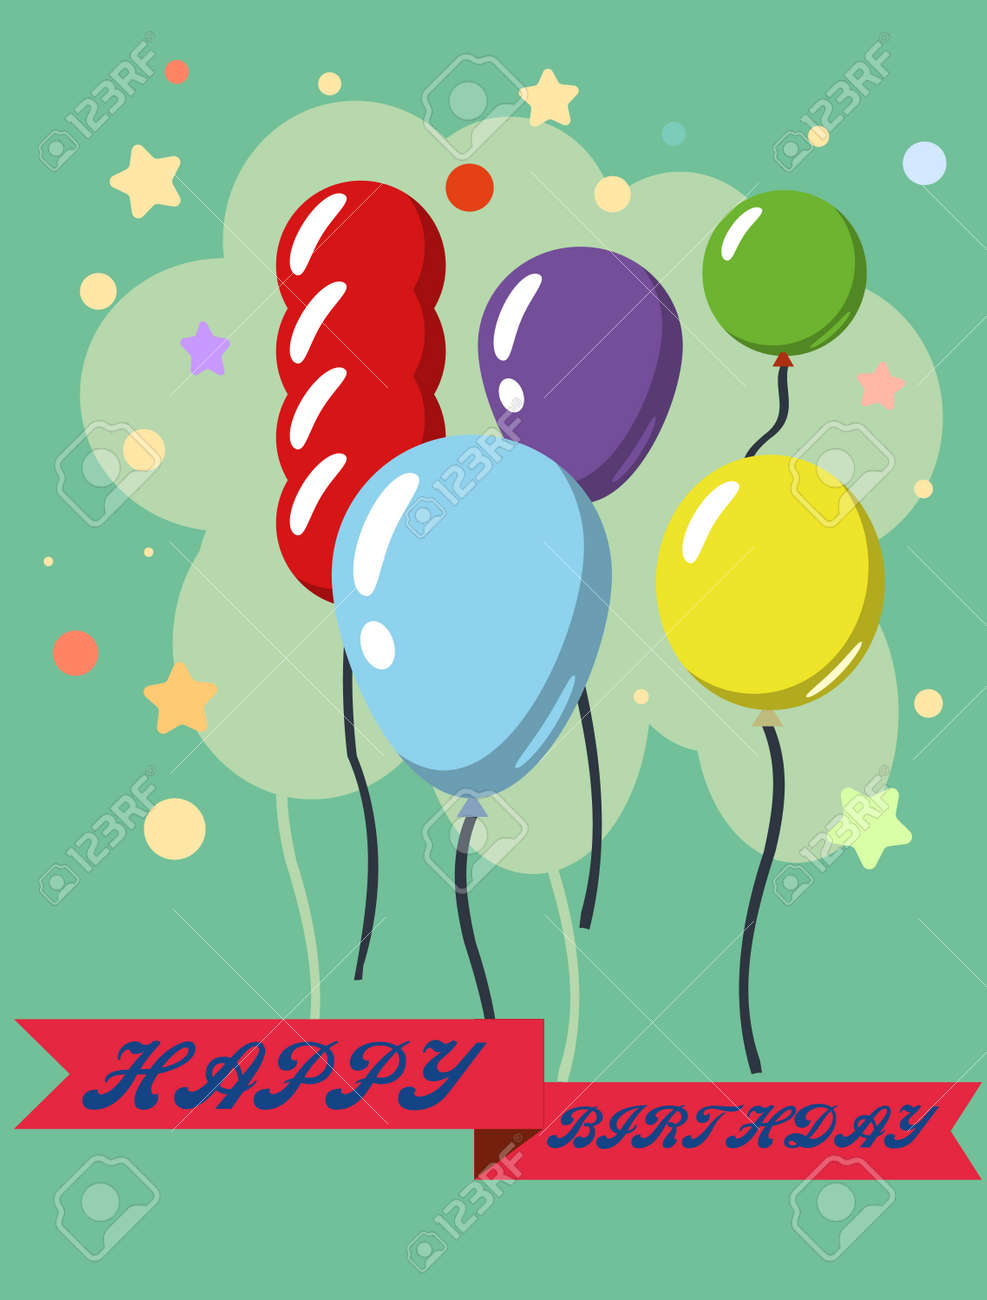 Happy Birthday Vector Design Greeting Cards With Balloon Confetti Template For Celebration